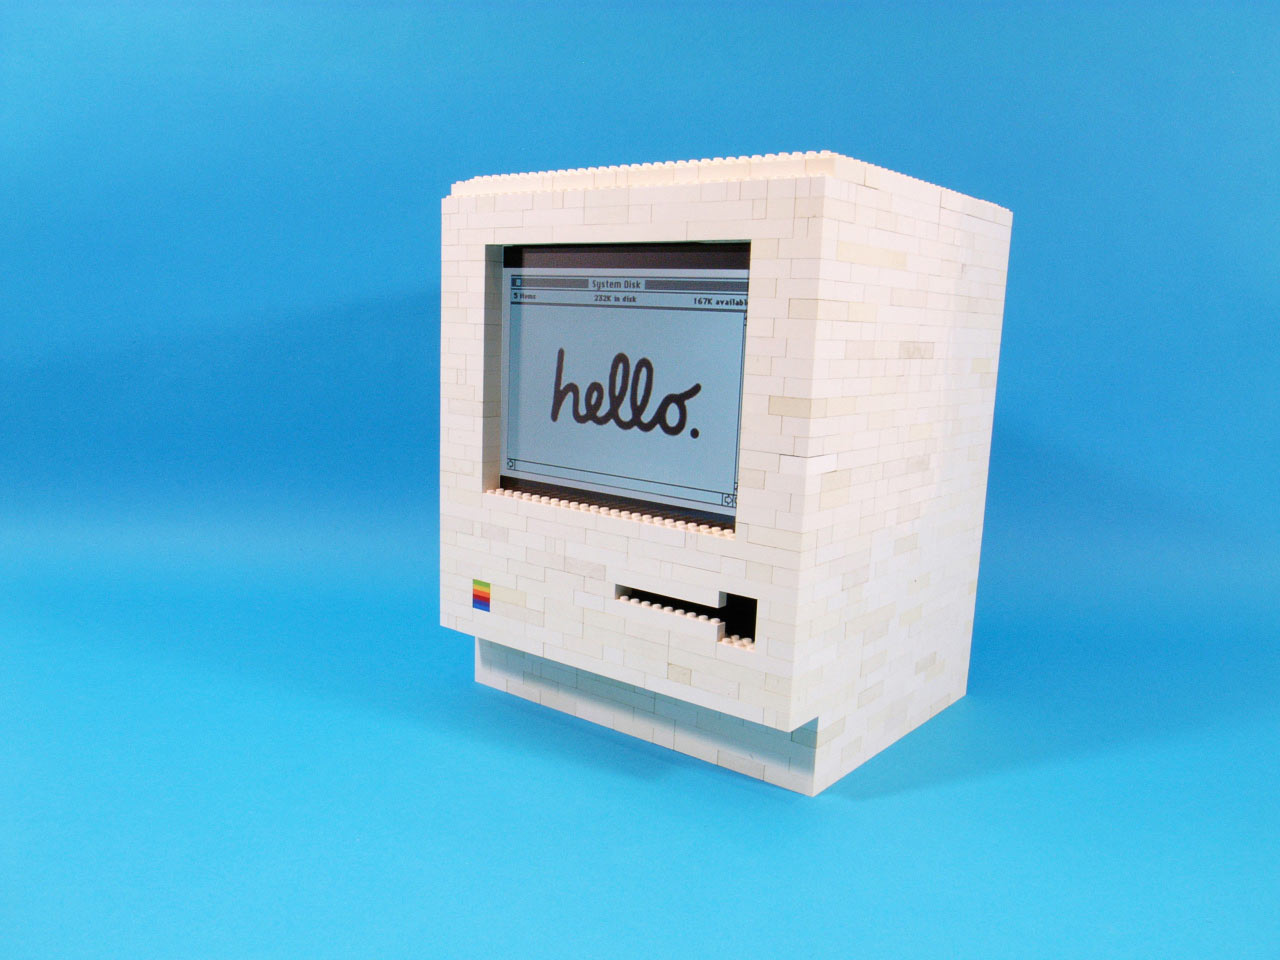 LEGO-Mac-Apple-Computer-iPad-6